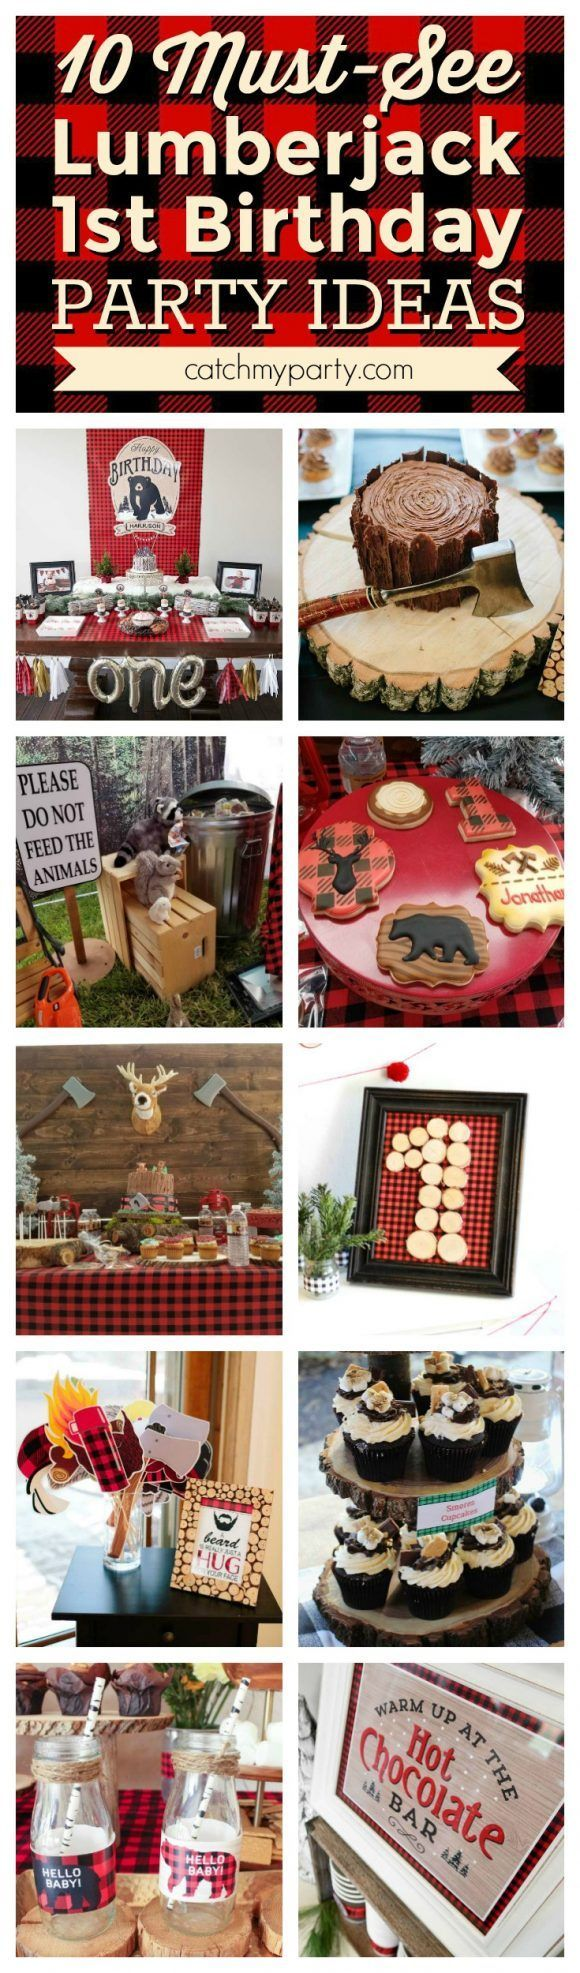 If you're planning a Lumberjack party then you're going to love these lumberjack 1st birthday party ideas I've picked out for you. Lumberjack 1st birthday parties are a really popular theme on Catch M